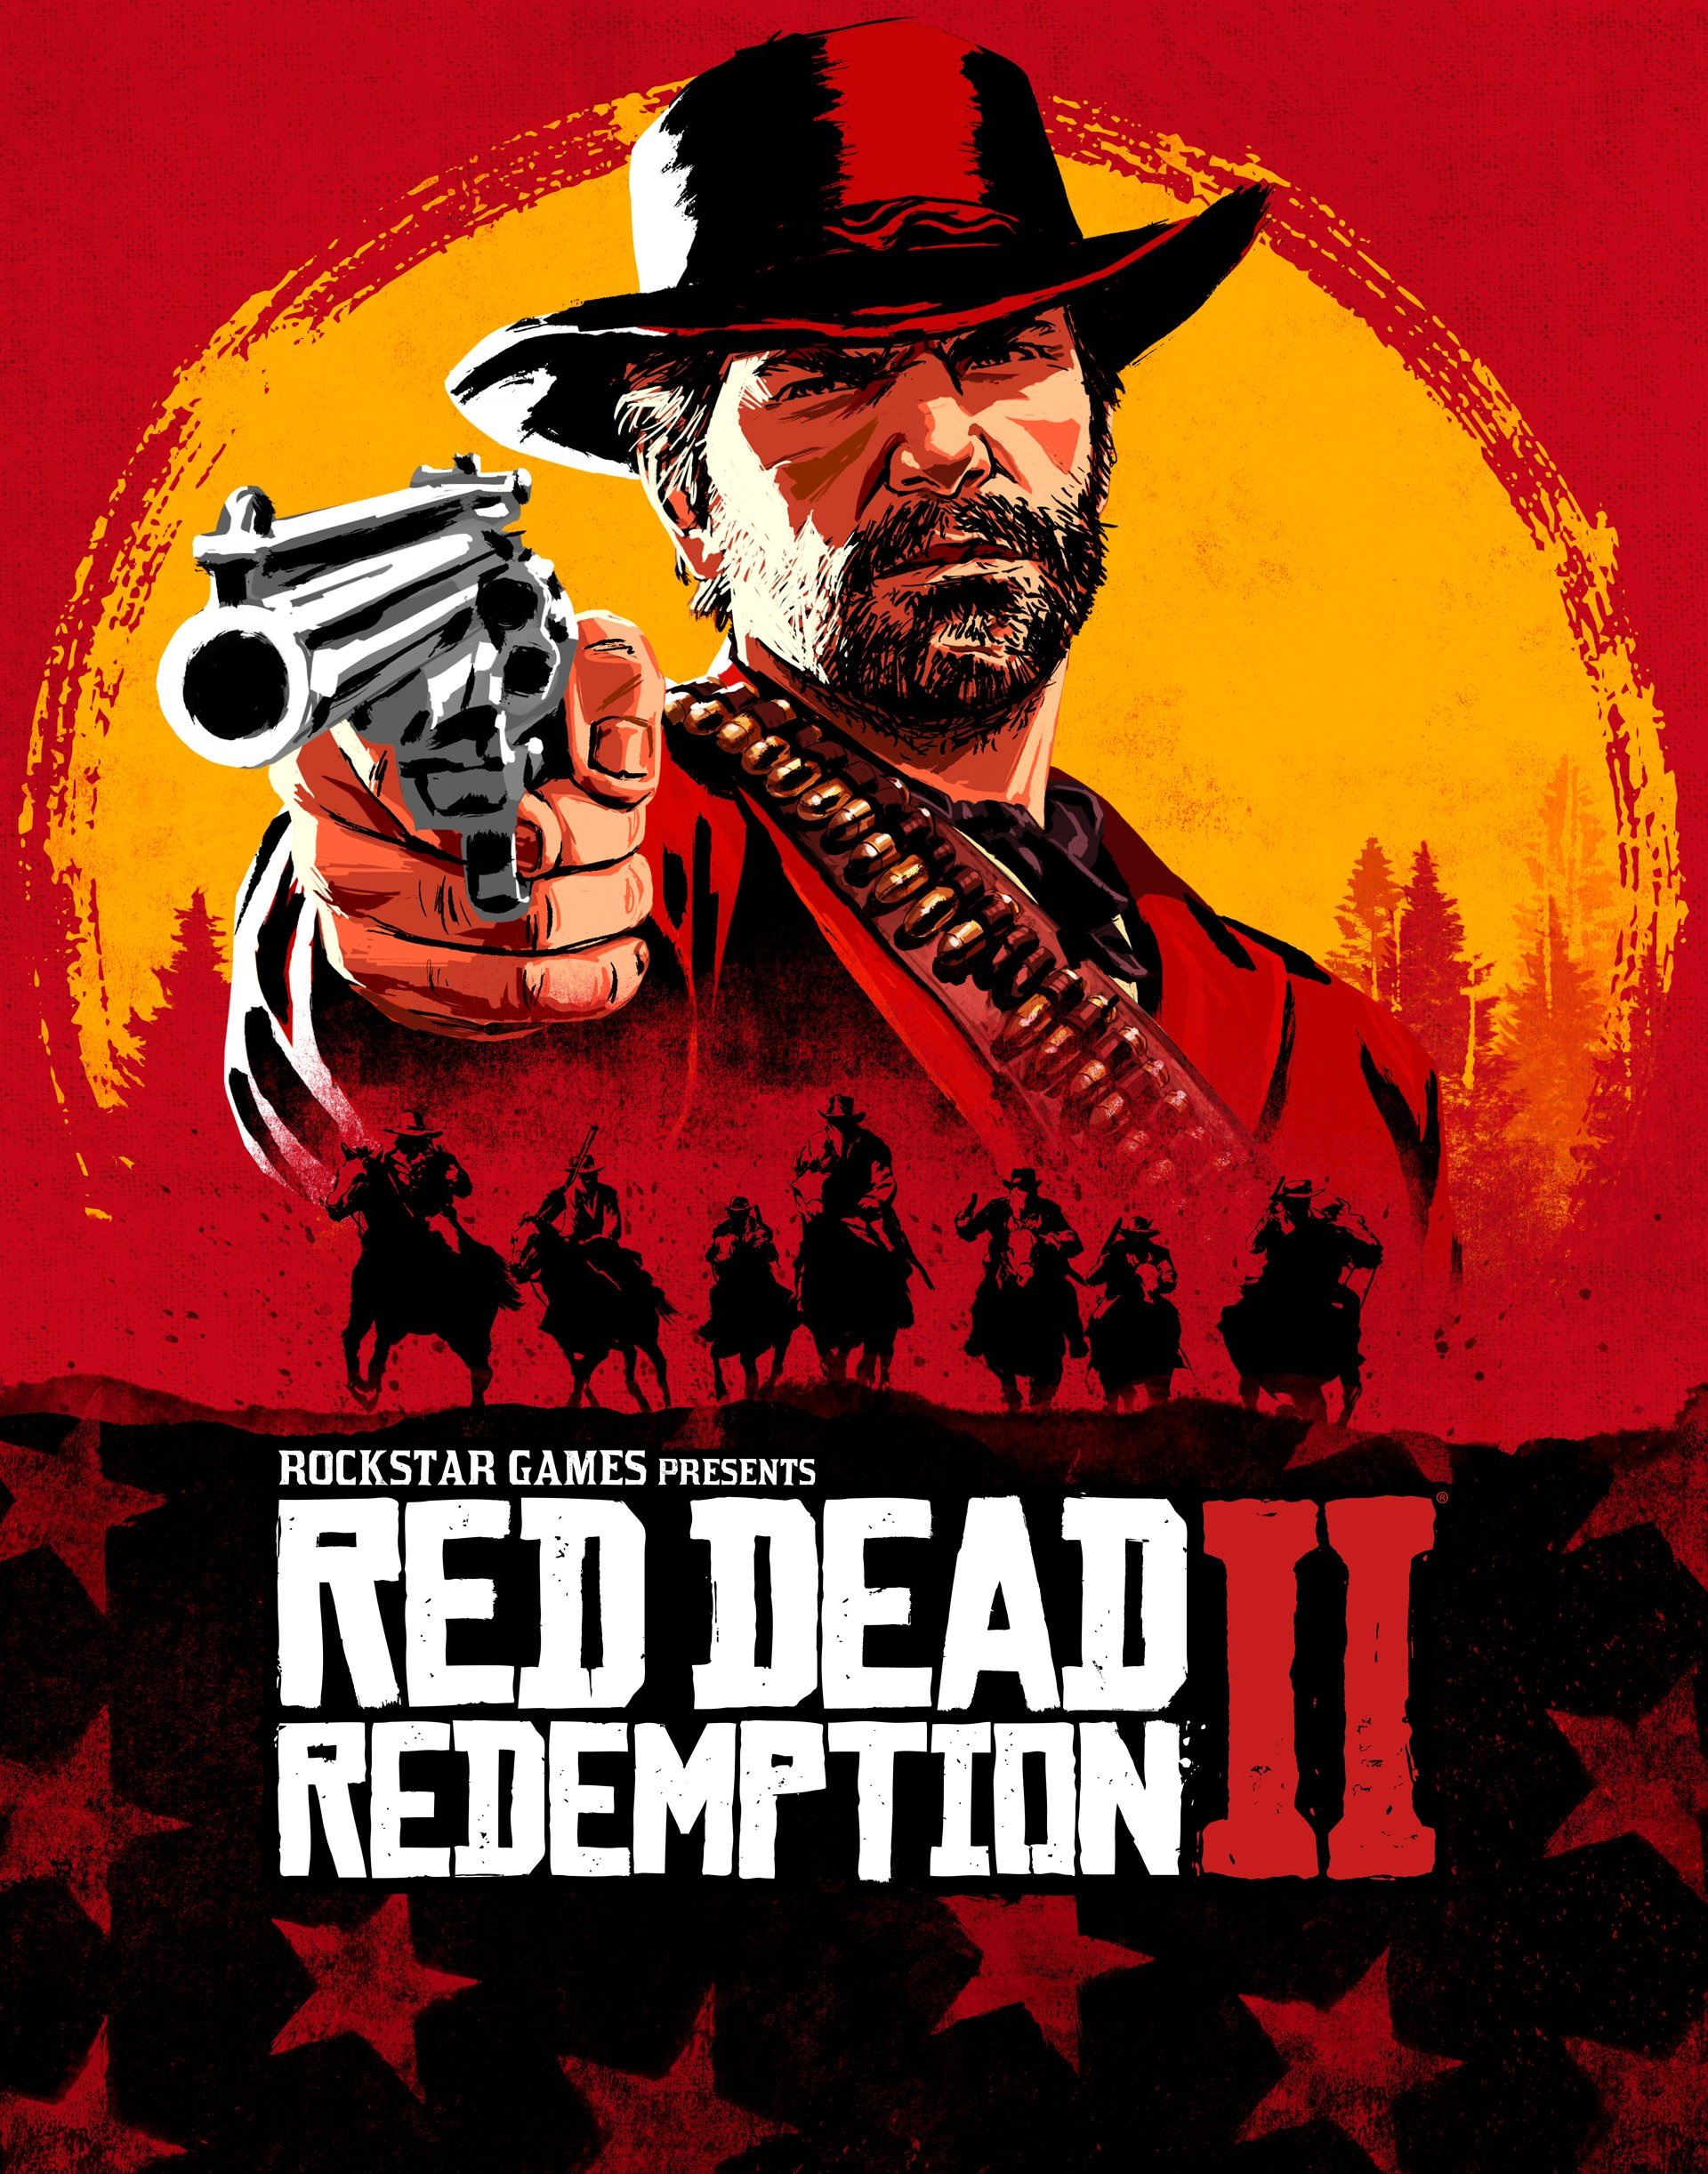 Red Dead Redemption 2: Ultimate Edition v.1.0.1311.23 (2019) RePack от R.G. Механики (2019)